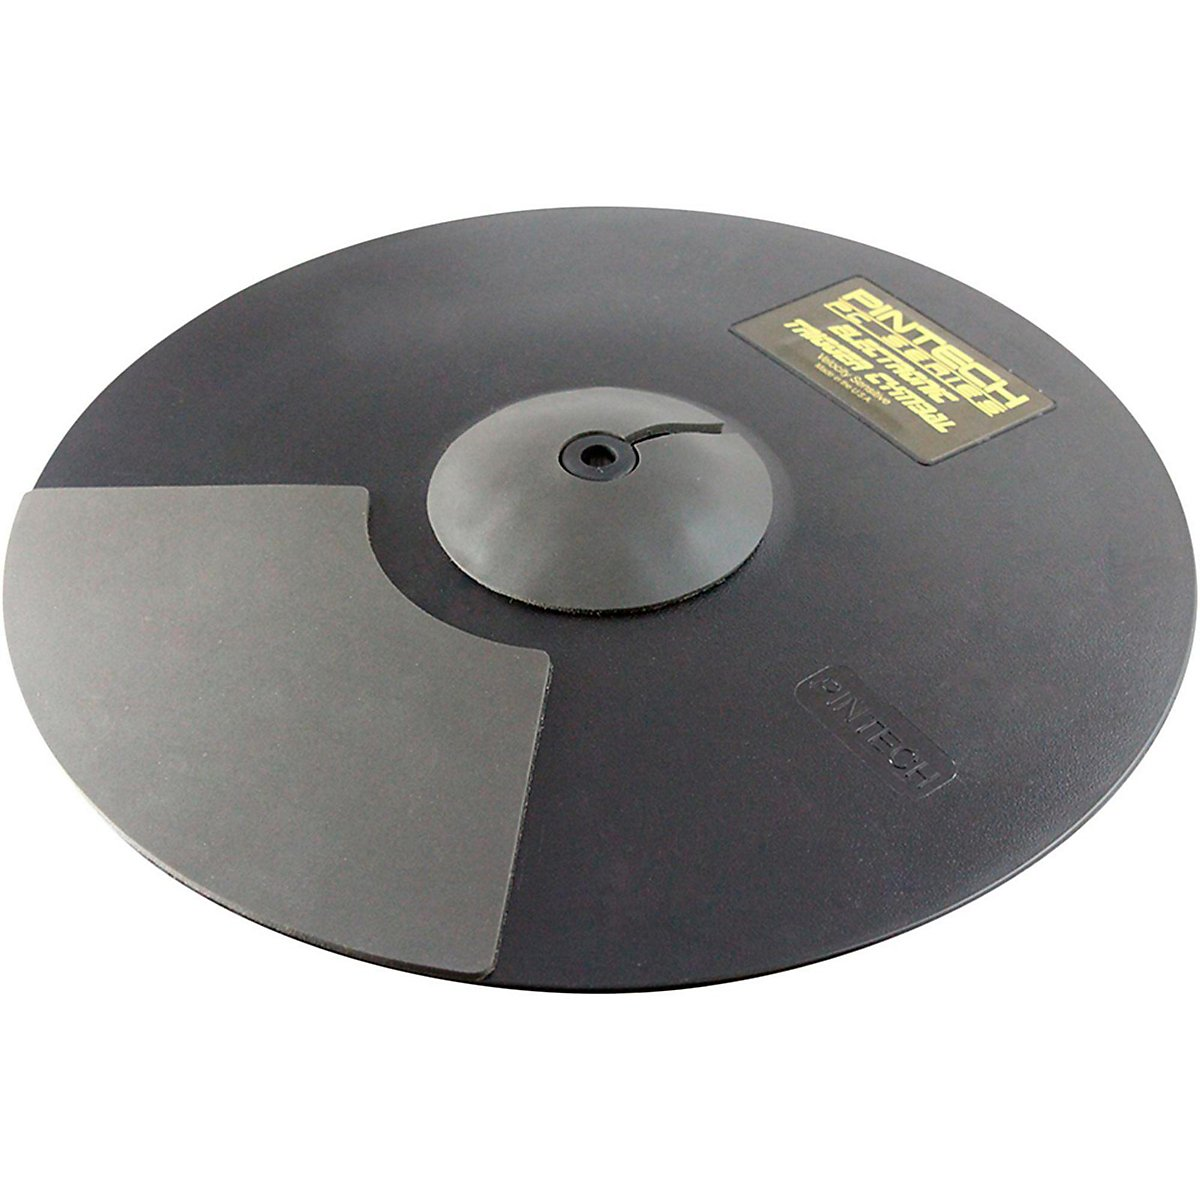 Pintech Percussion PC16-B 16'' Dual Zone Ride with Bell & Cable